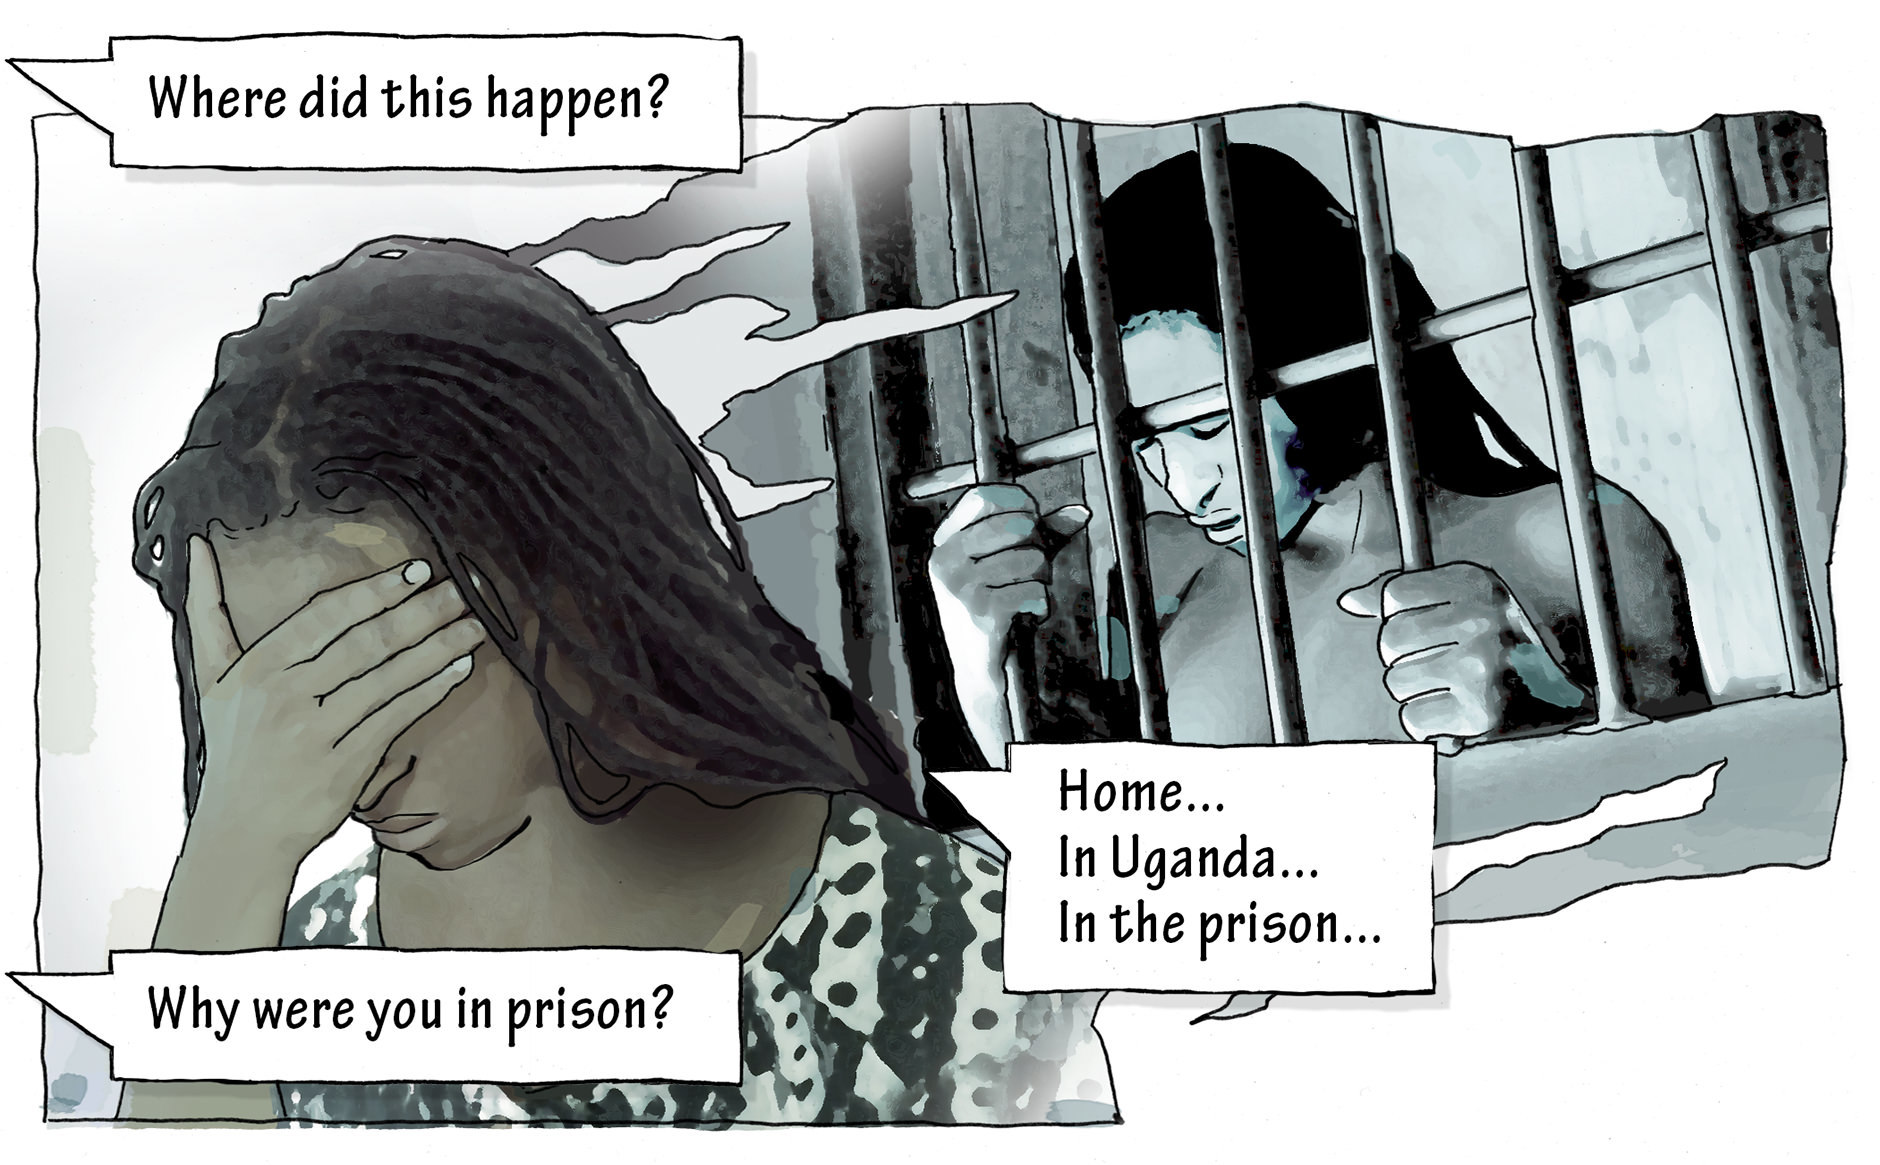 """Dr. Quereshi: Where did this happen? Peace: """"Home...In Uganda...In the prison..."""". Dr. Quereshi: Why were you in prison?"""